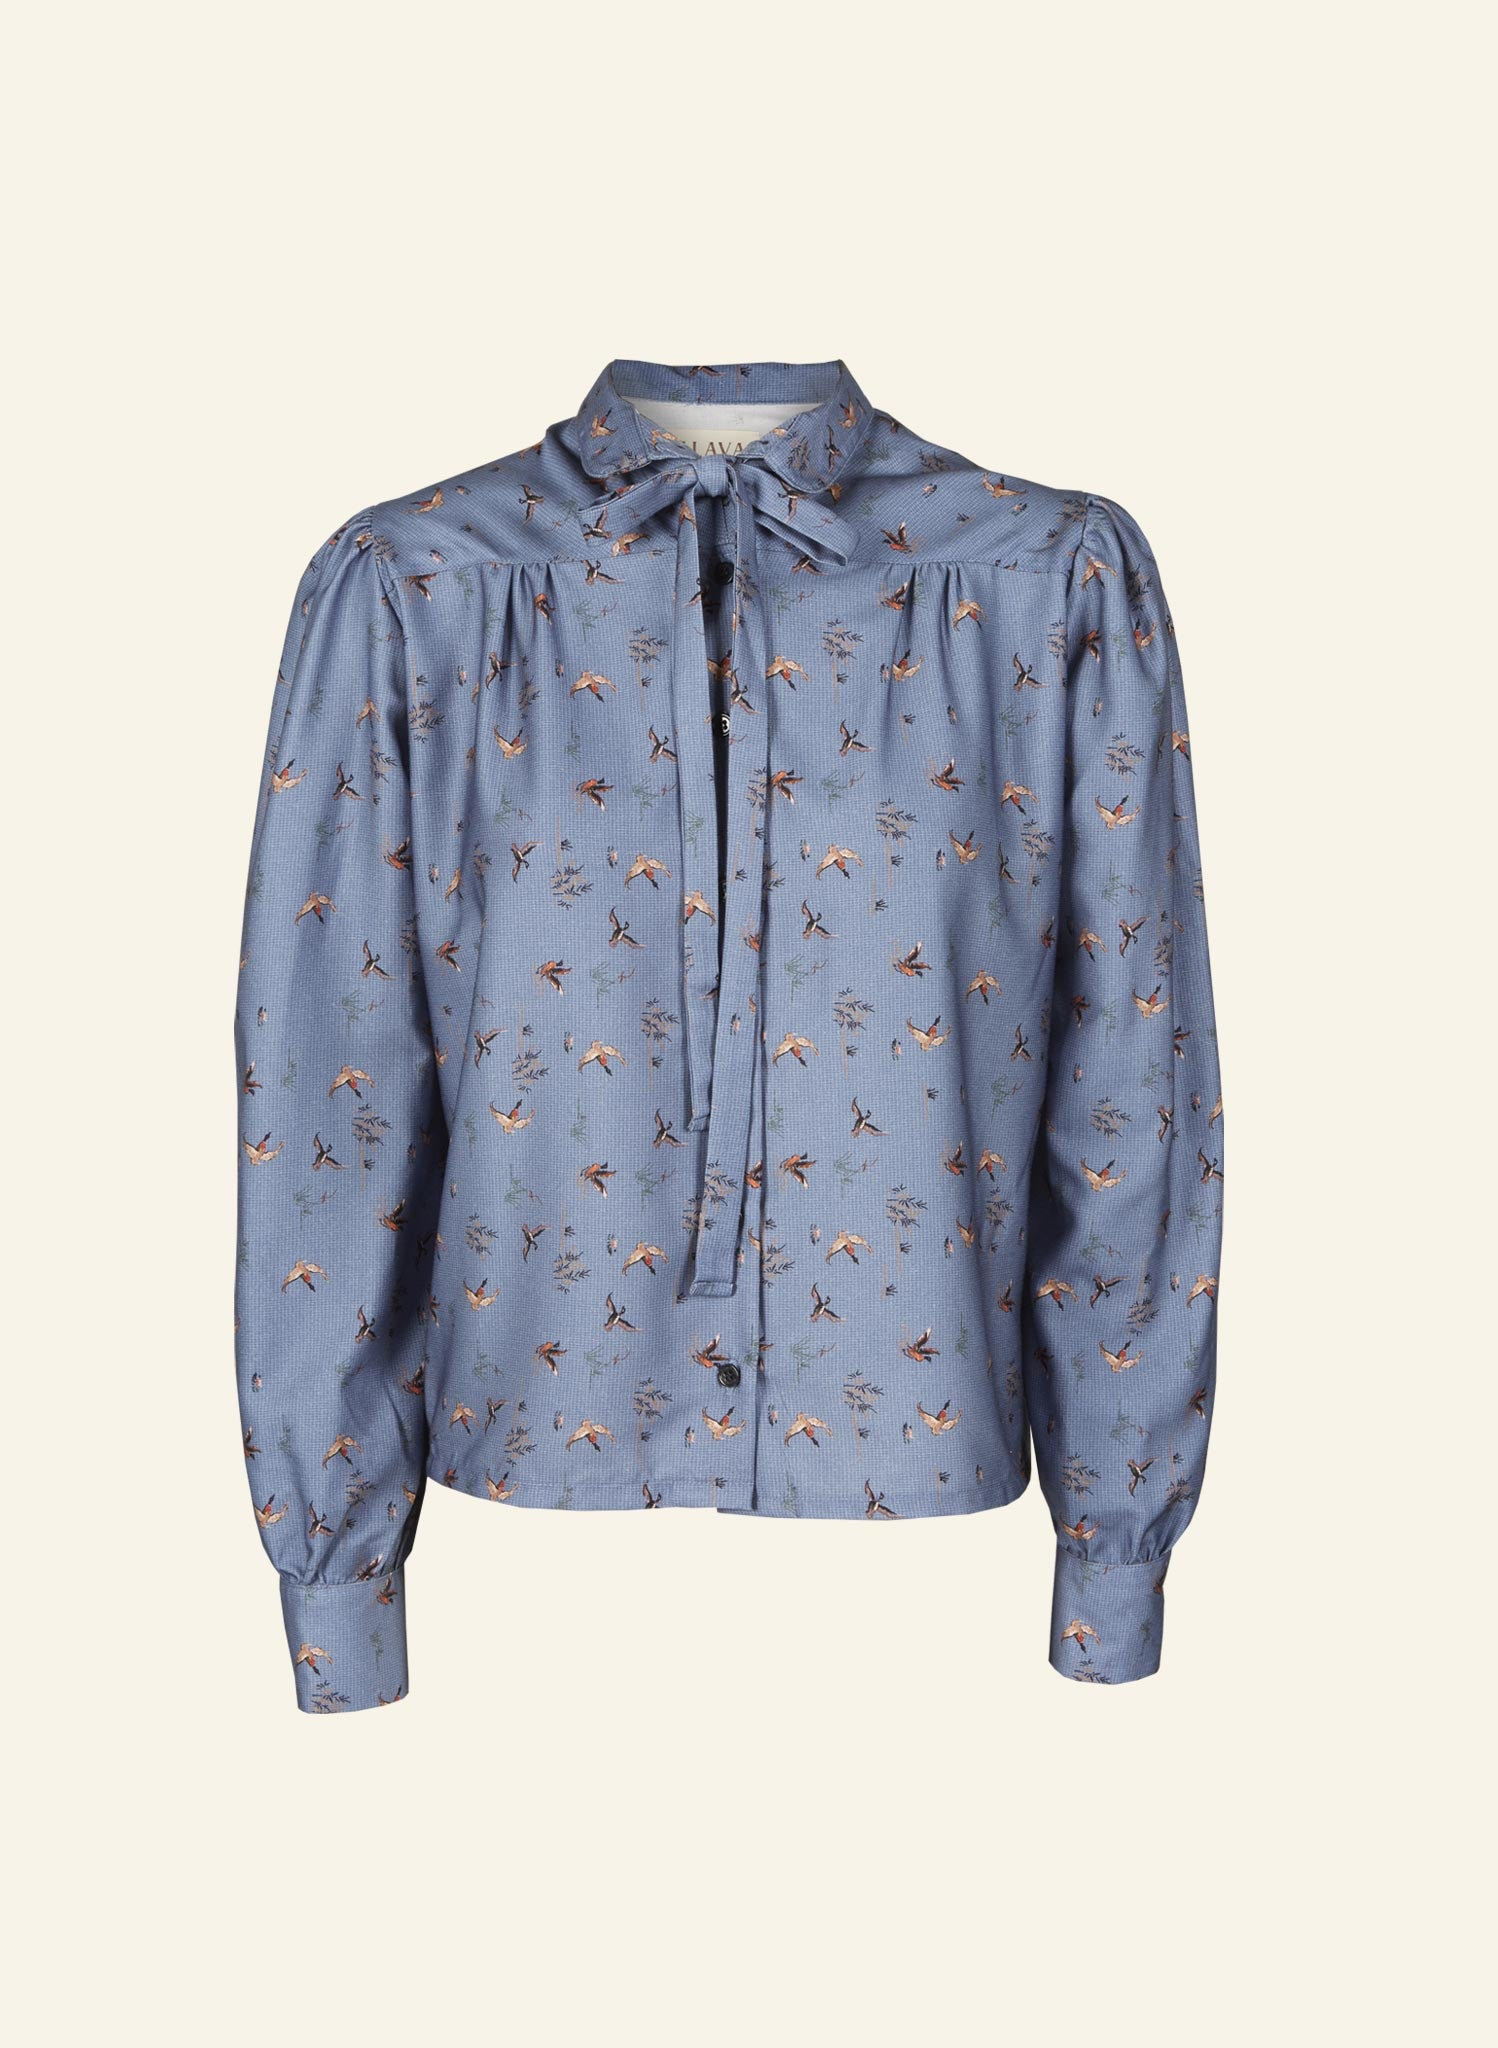 Anna - Blue Ducks - 100% Tencel